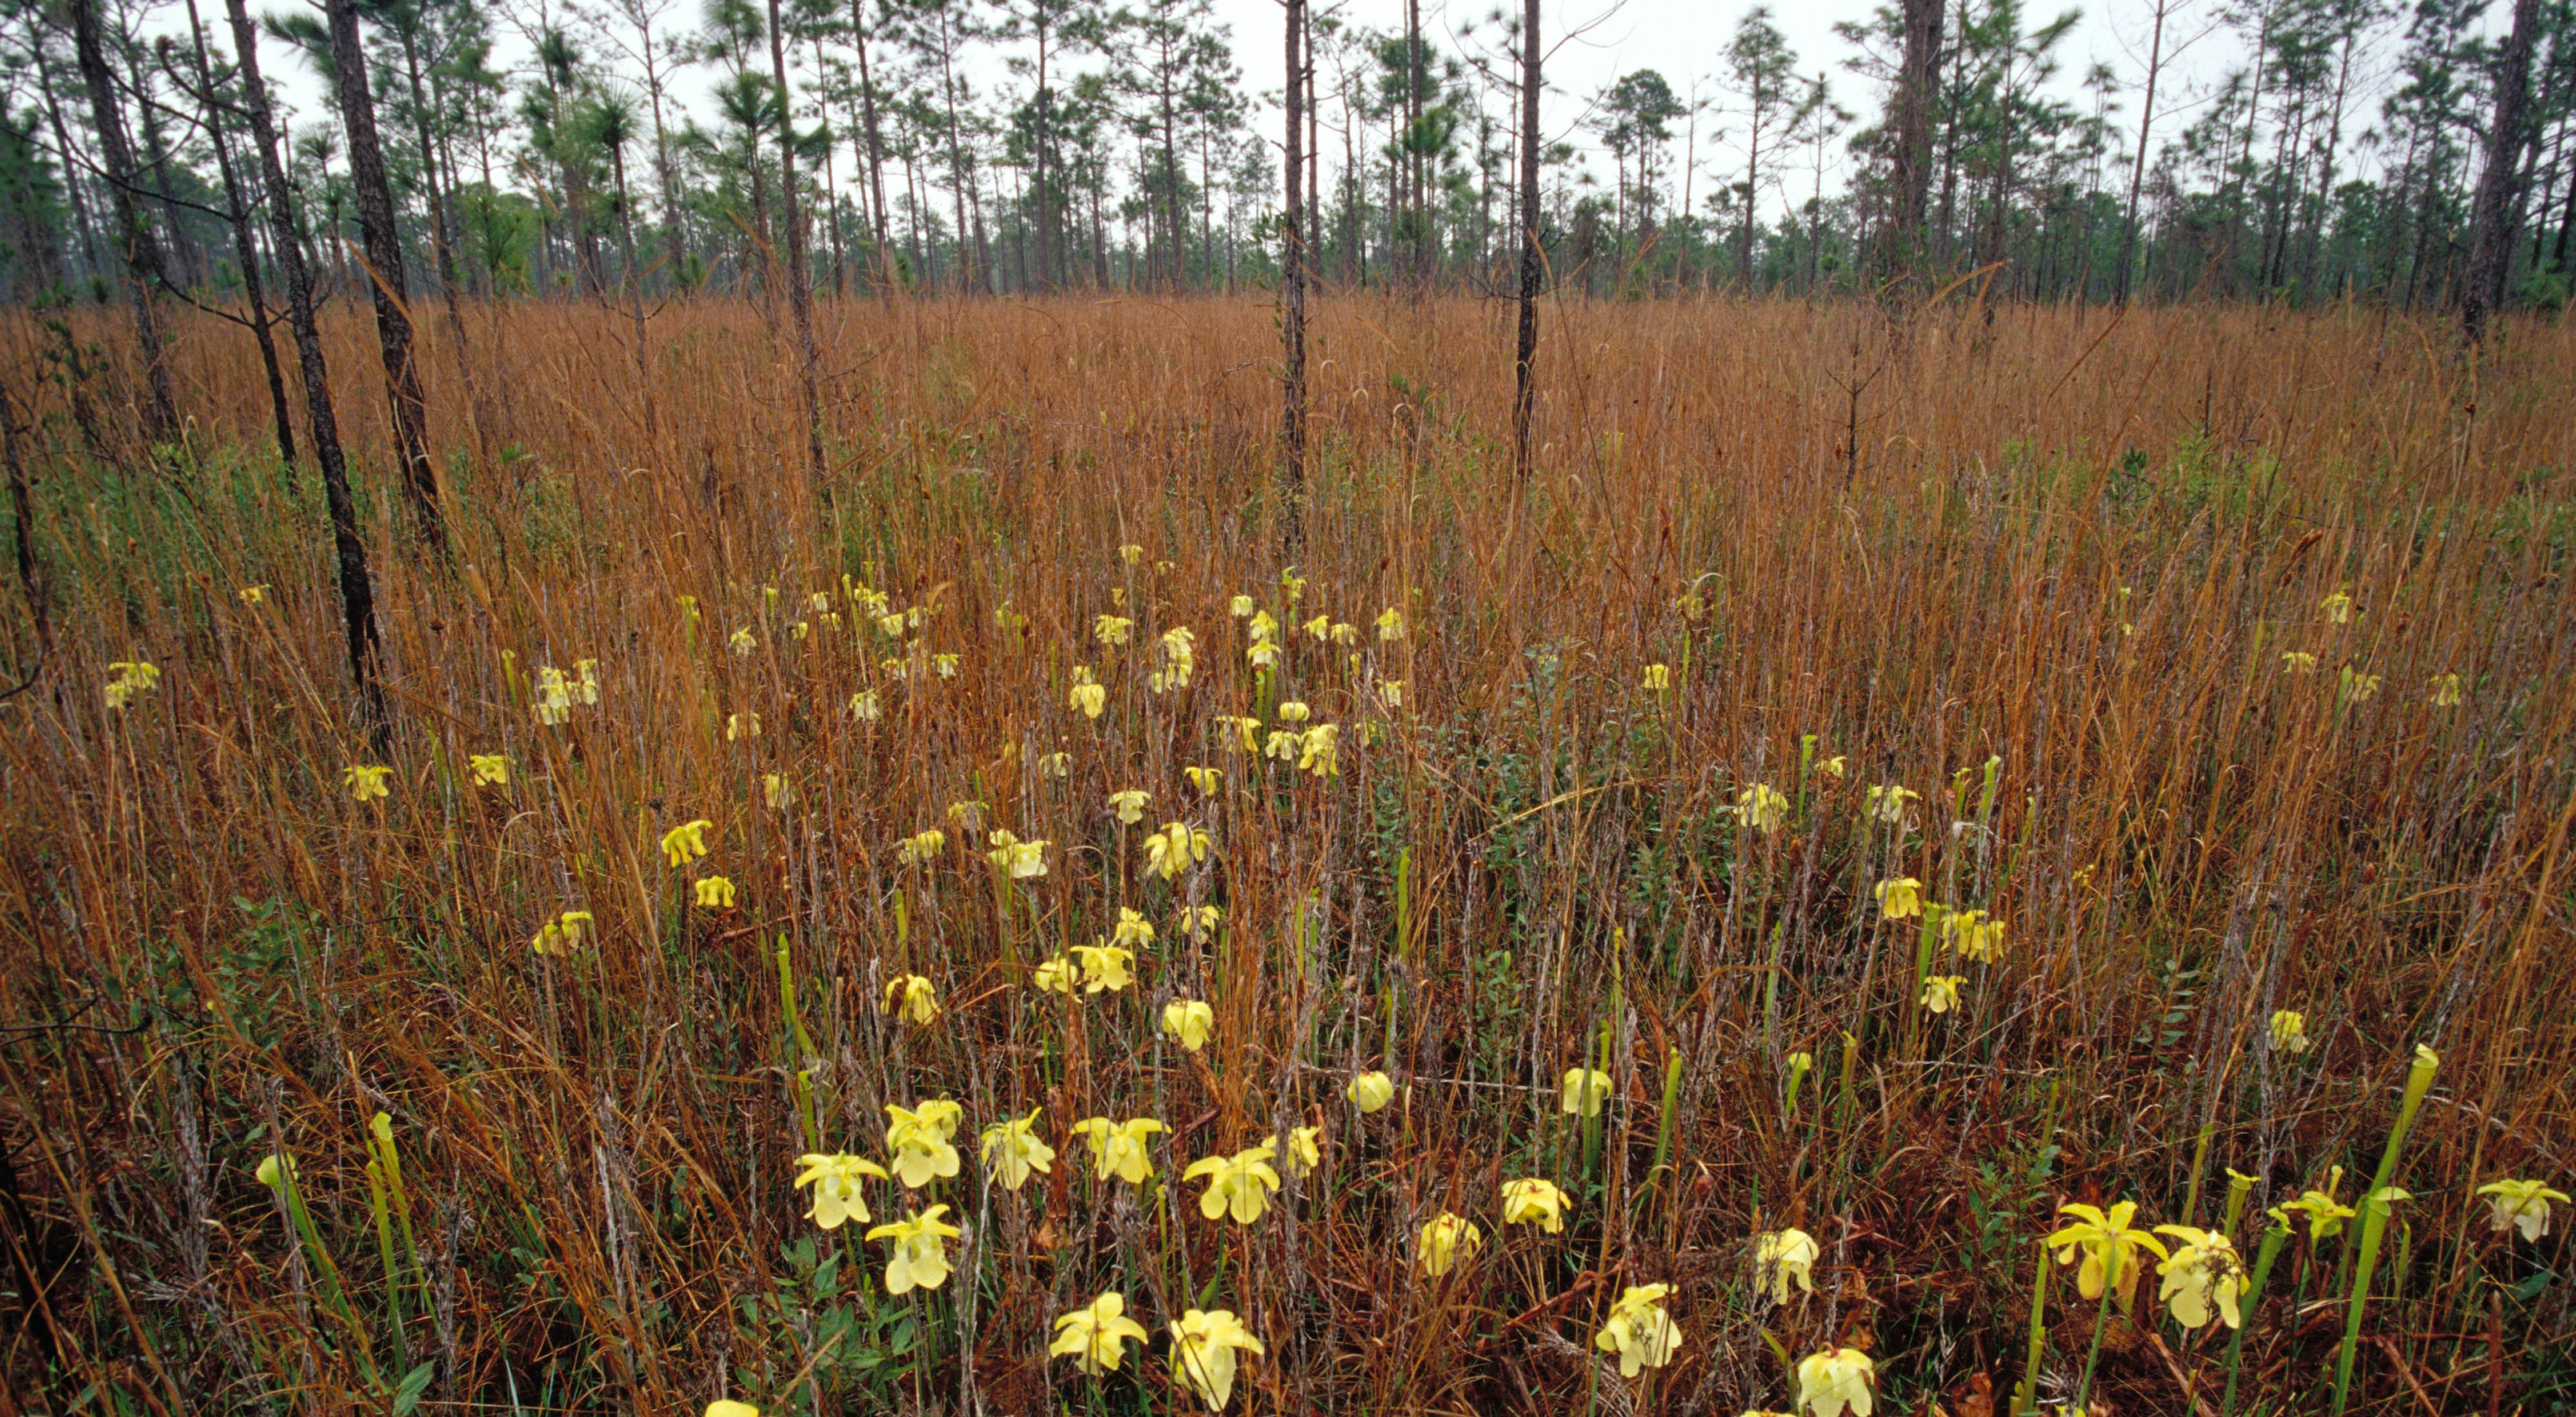 April 2002. Longleaf pine forest burned May 2001 with winged pitcher plant in foreground. Grand Bay Savanna in Mississippi/Alabama.